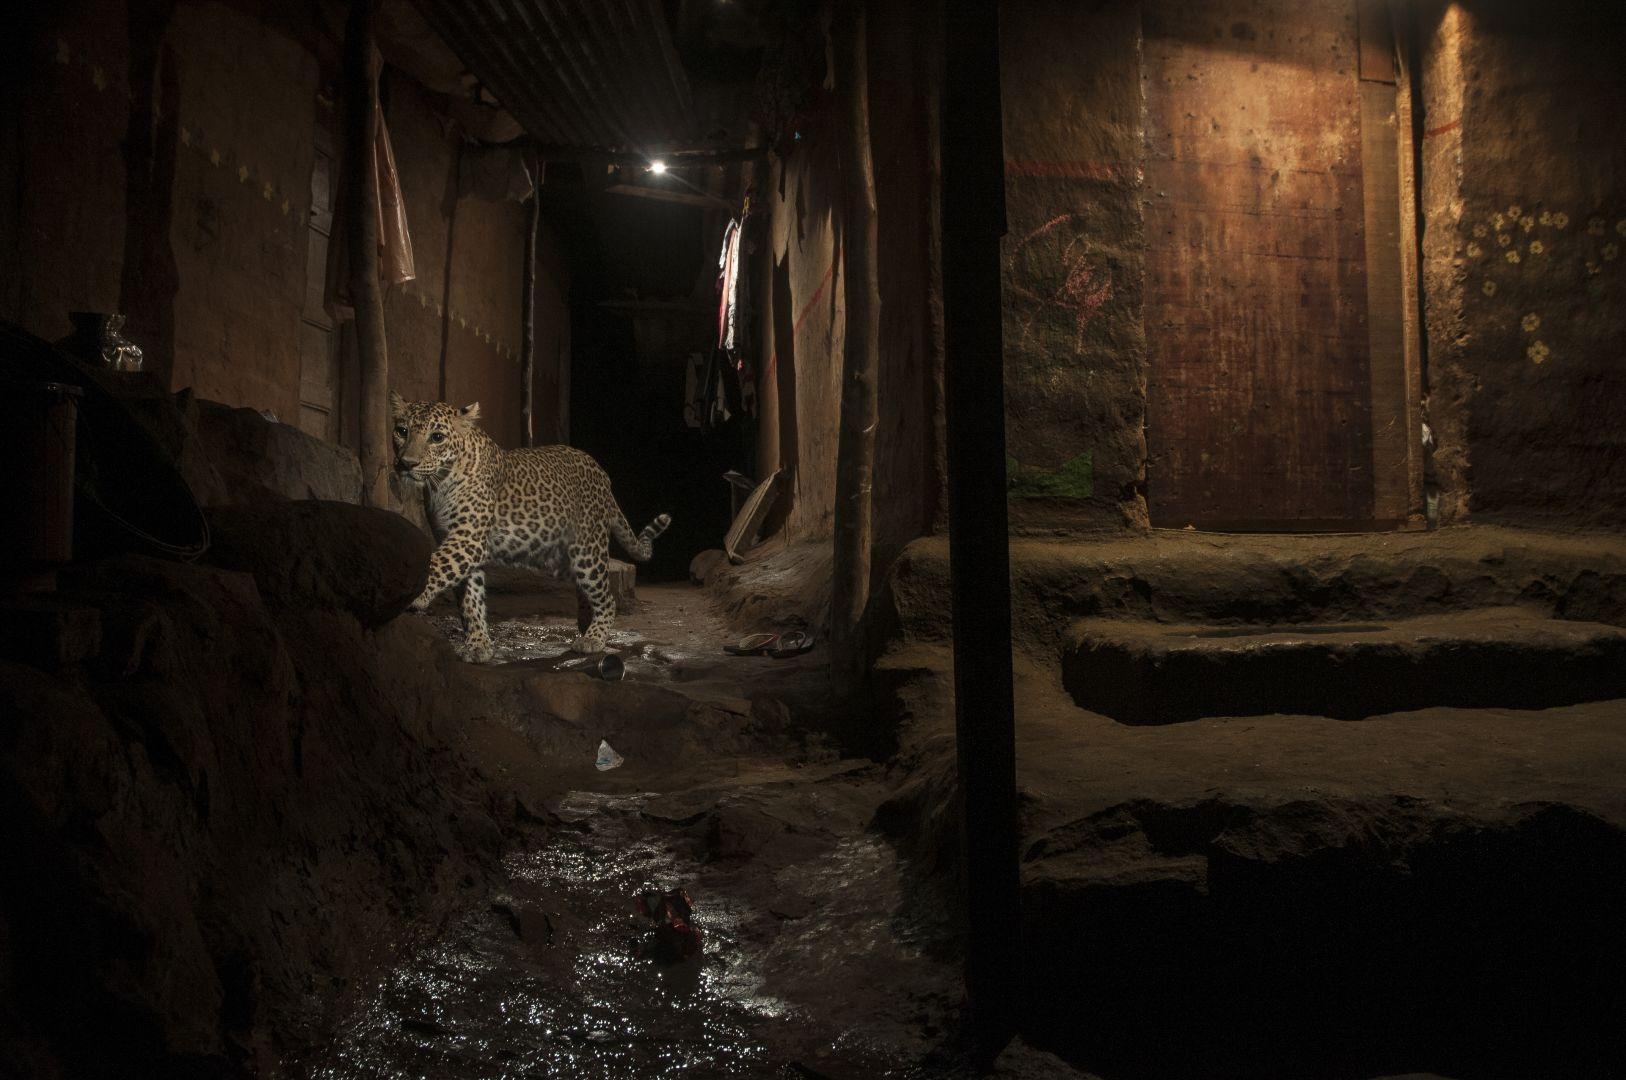 Big Cat in My Backyard, Nayan Khanolkar, India, The World Press Photo Contest